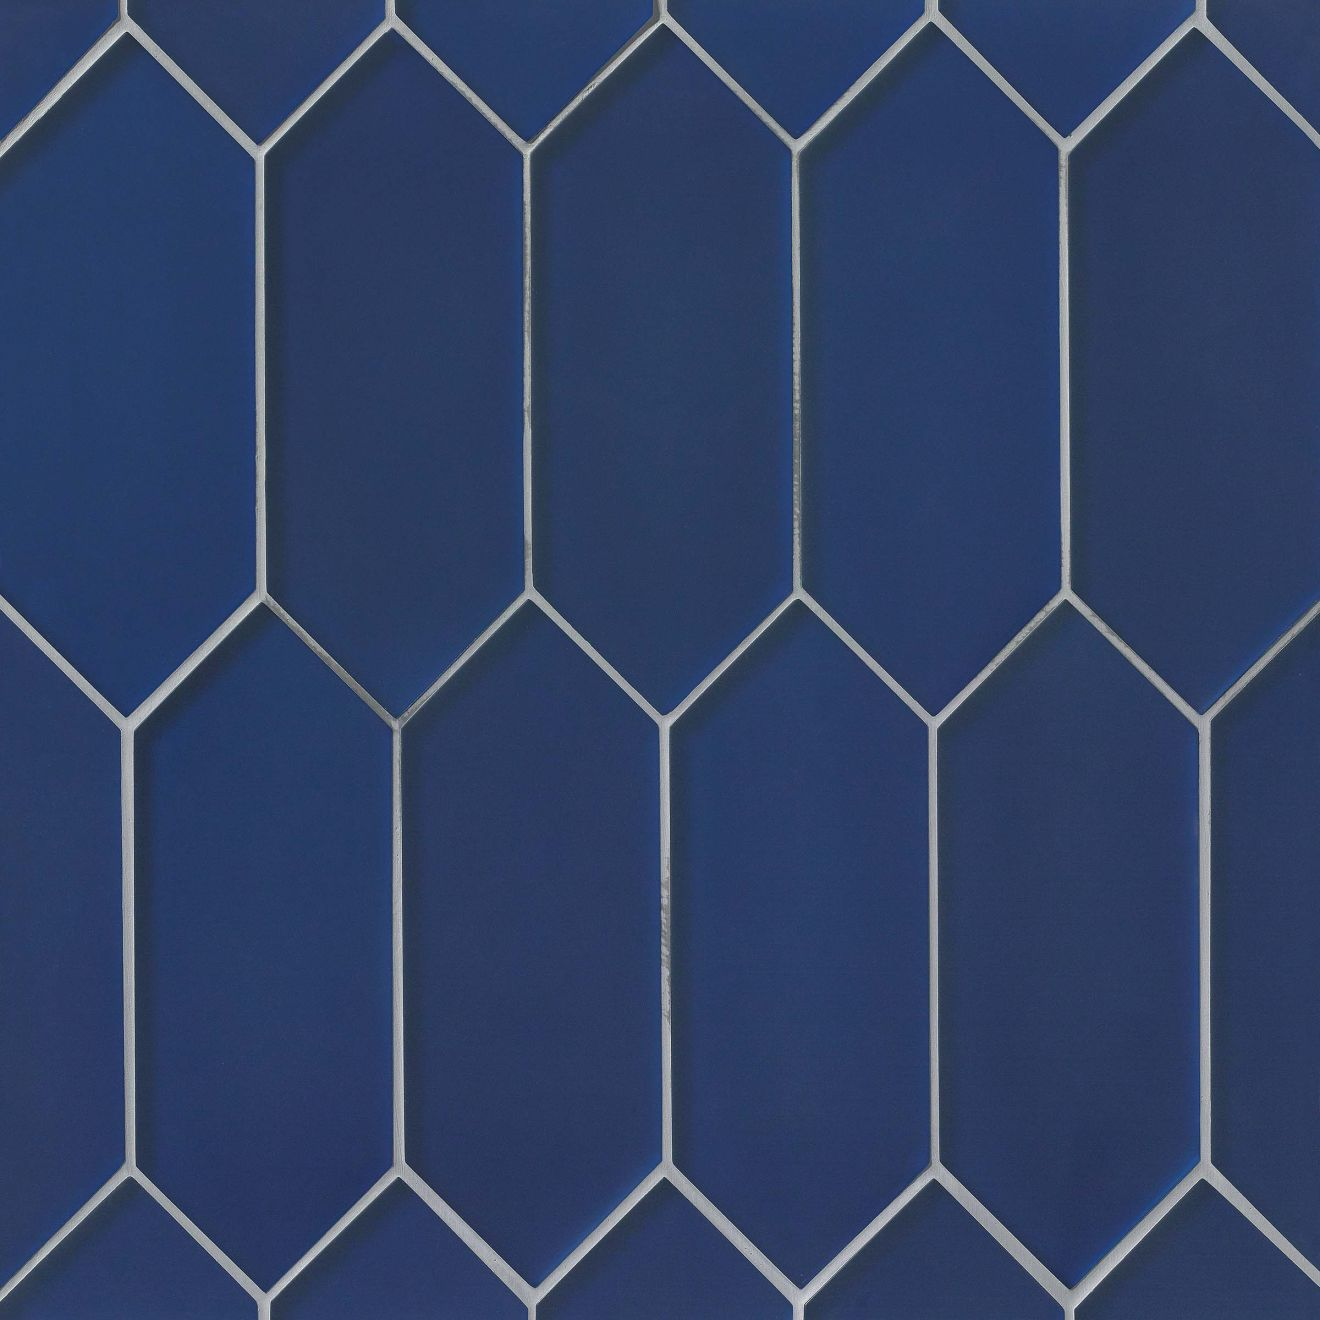 Verve Wall Mosaic in Starry Night